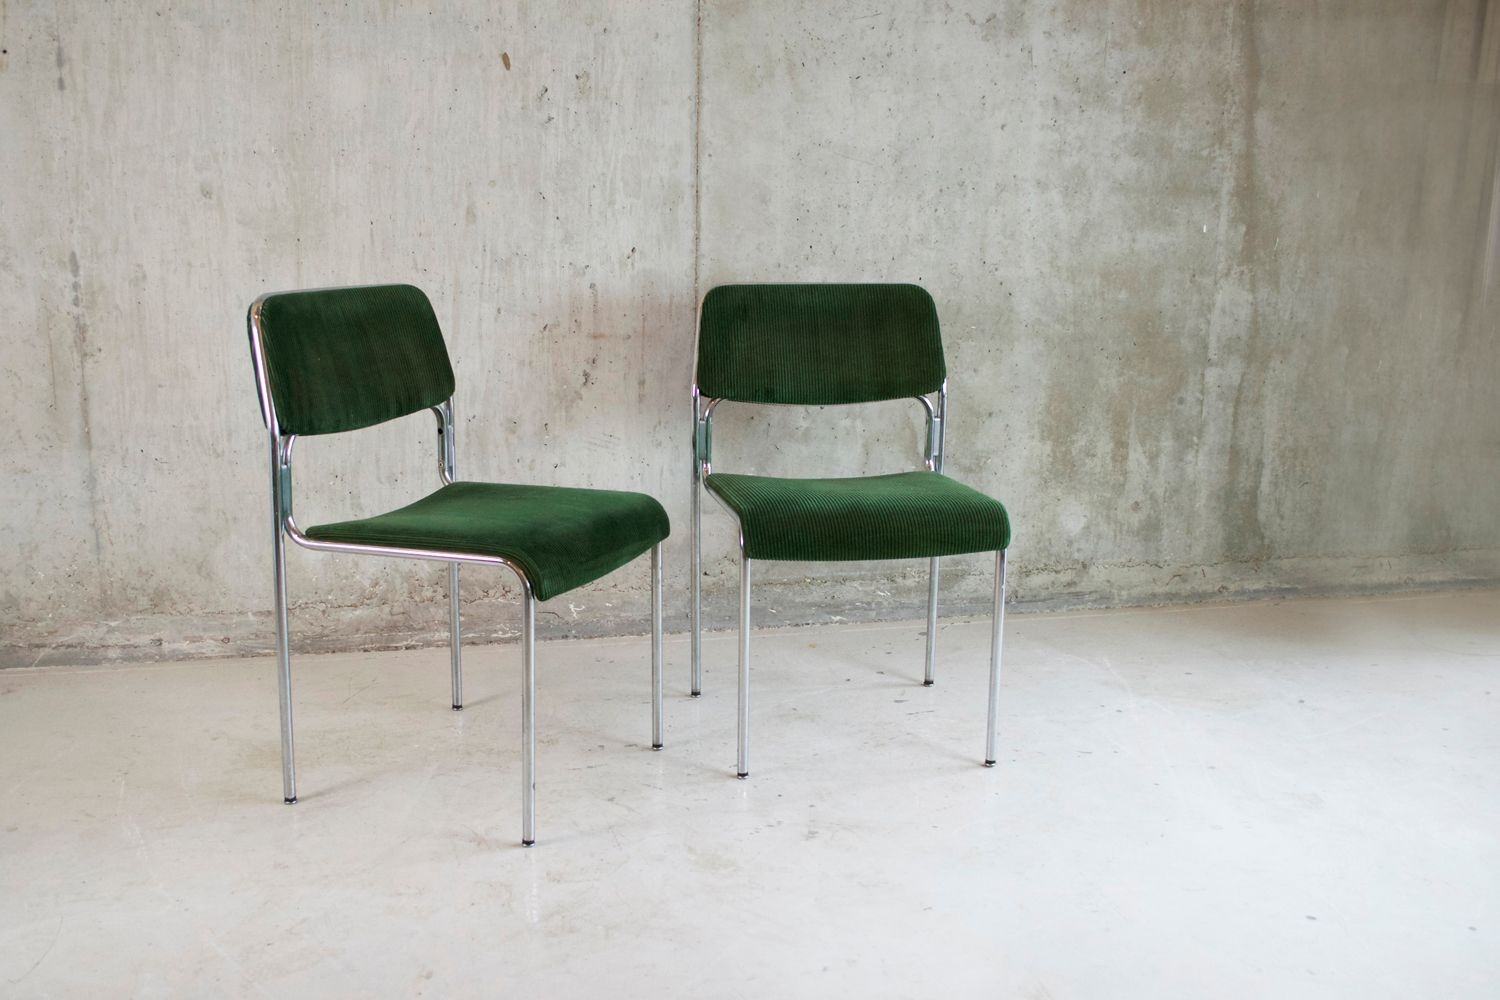 german green corduroy office chairs 1970s set of 2 for